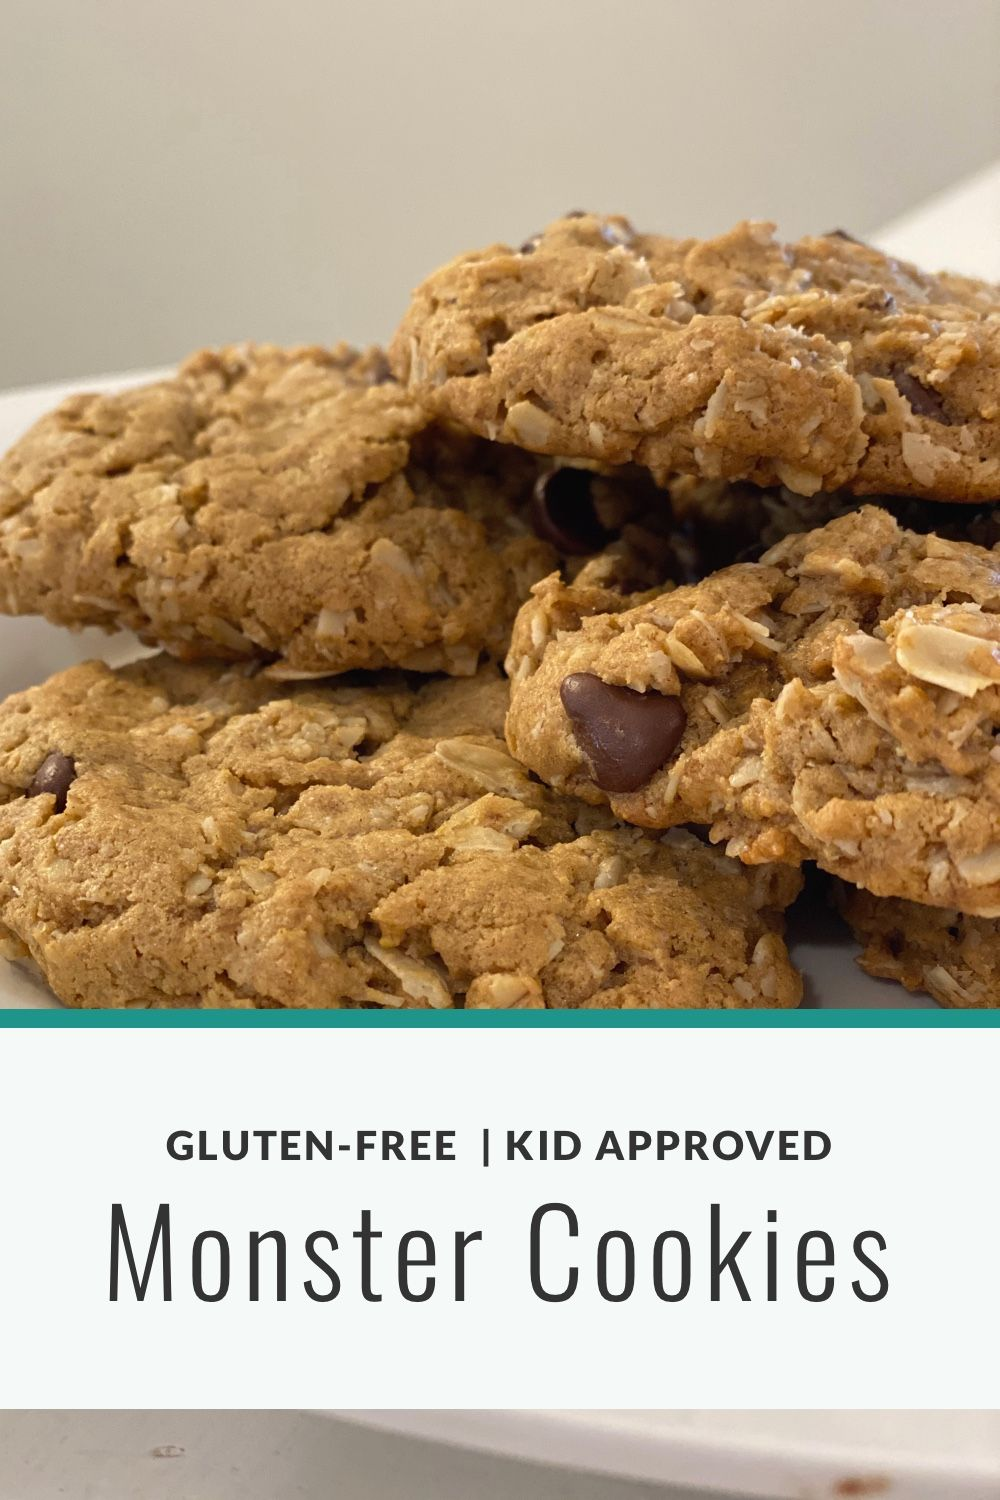 I like to use this recipe as a base and play with the mix-ins, nuts, granola, seeds, dried fruit, chocolates or candies. There are so many combinations to have fun with! Plain, chocolate chip or the whole pantry, whatever you choose, these cookies will cure your sweet tooth.#glutenfree #glutenfreecookies #glutenfreebaking #glutenfreeoatmealcookies  #monstercookies #glutenfreecookies #glutenfreecookierecipe #glutenfreechocolatechipcookies #peanutbuttercookie #peanutbuttercookierecipe